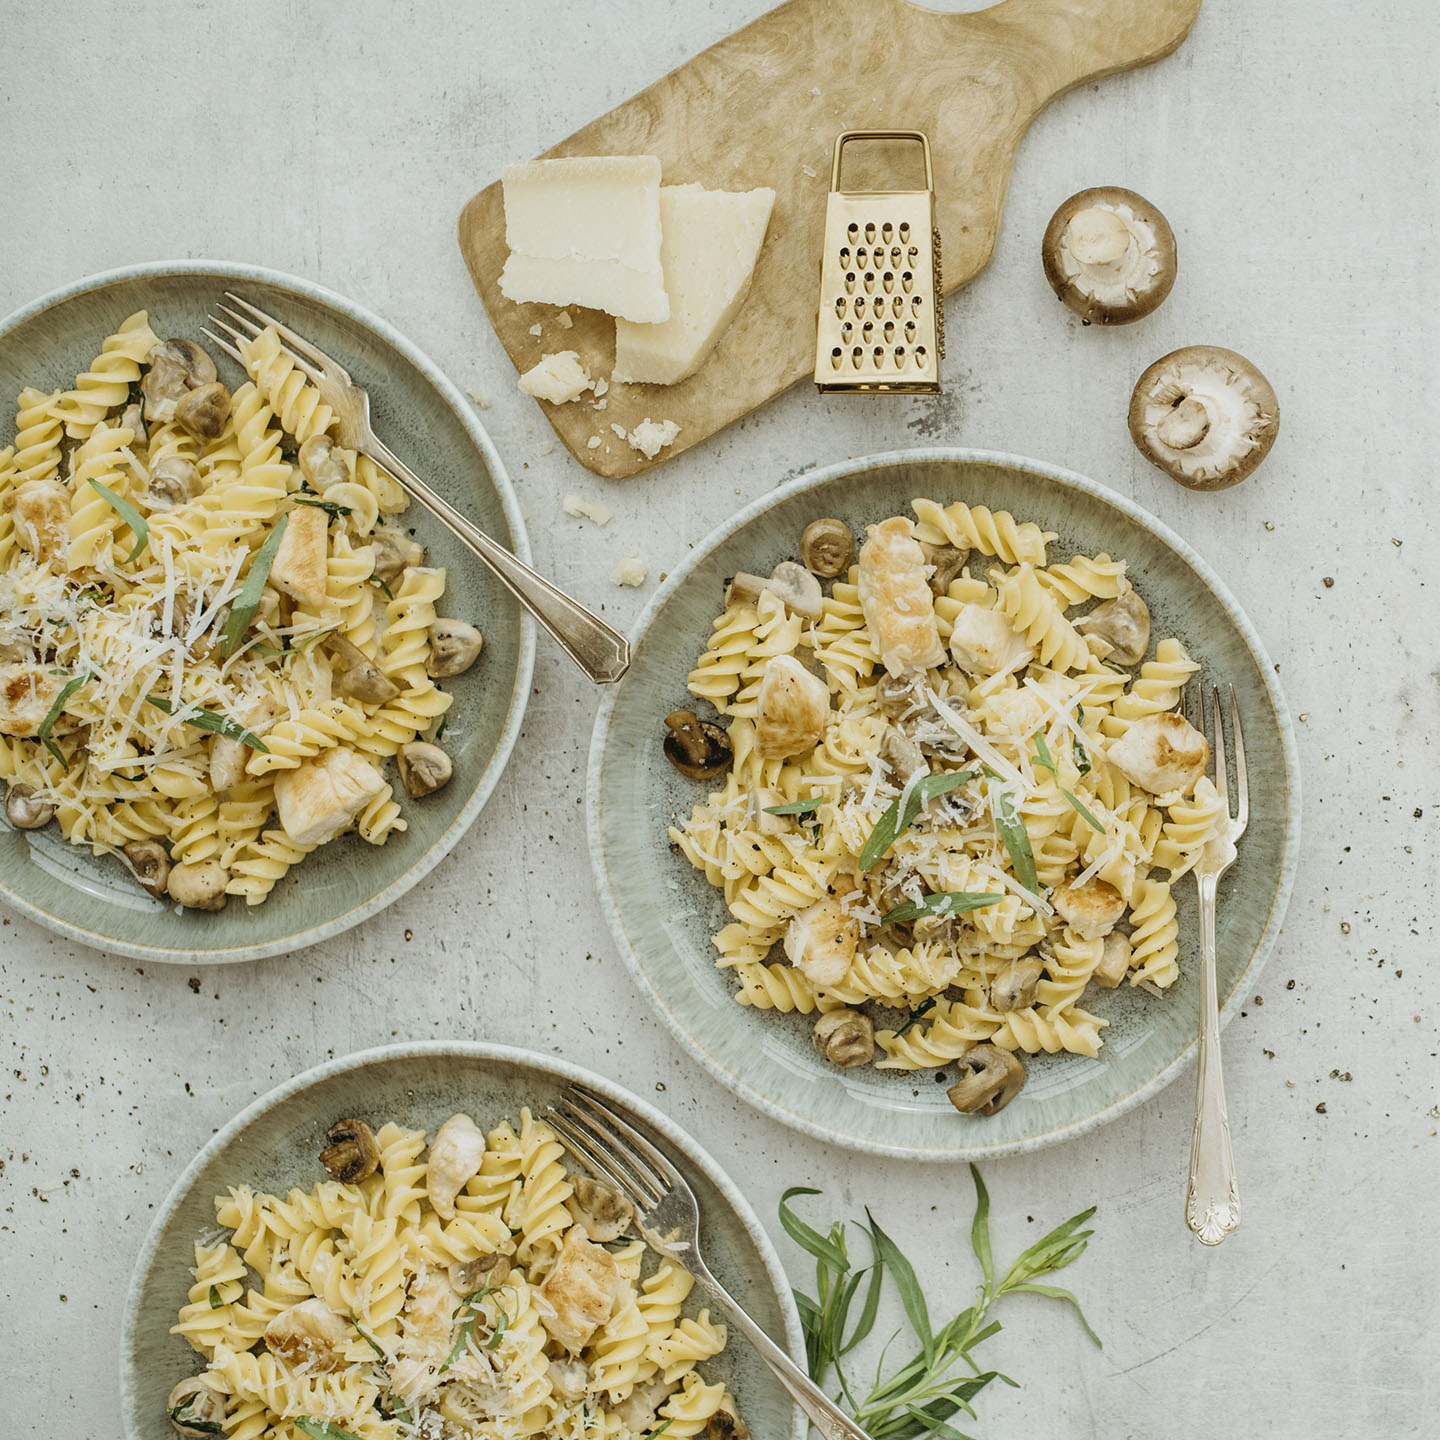 Le Moulin - Les recettes - Fusilli with chicken and mushrooms